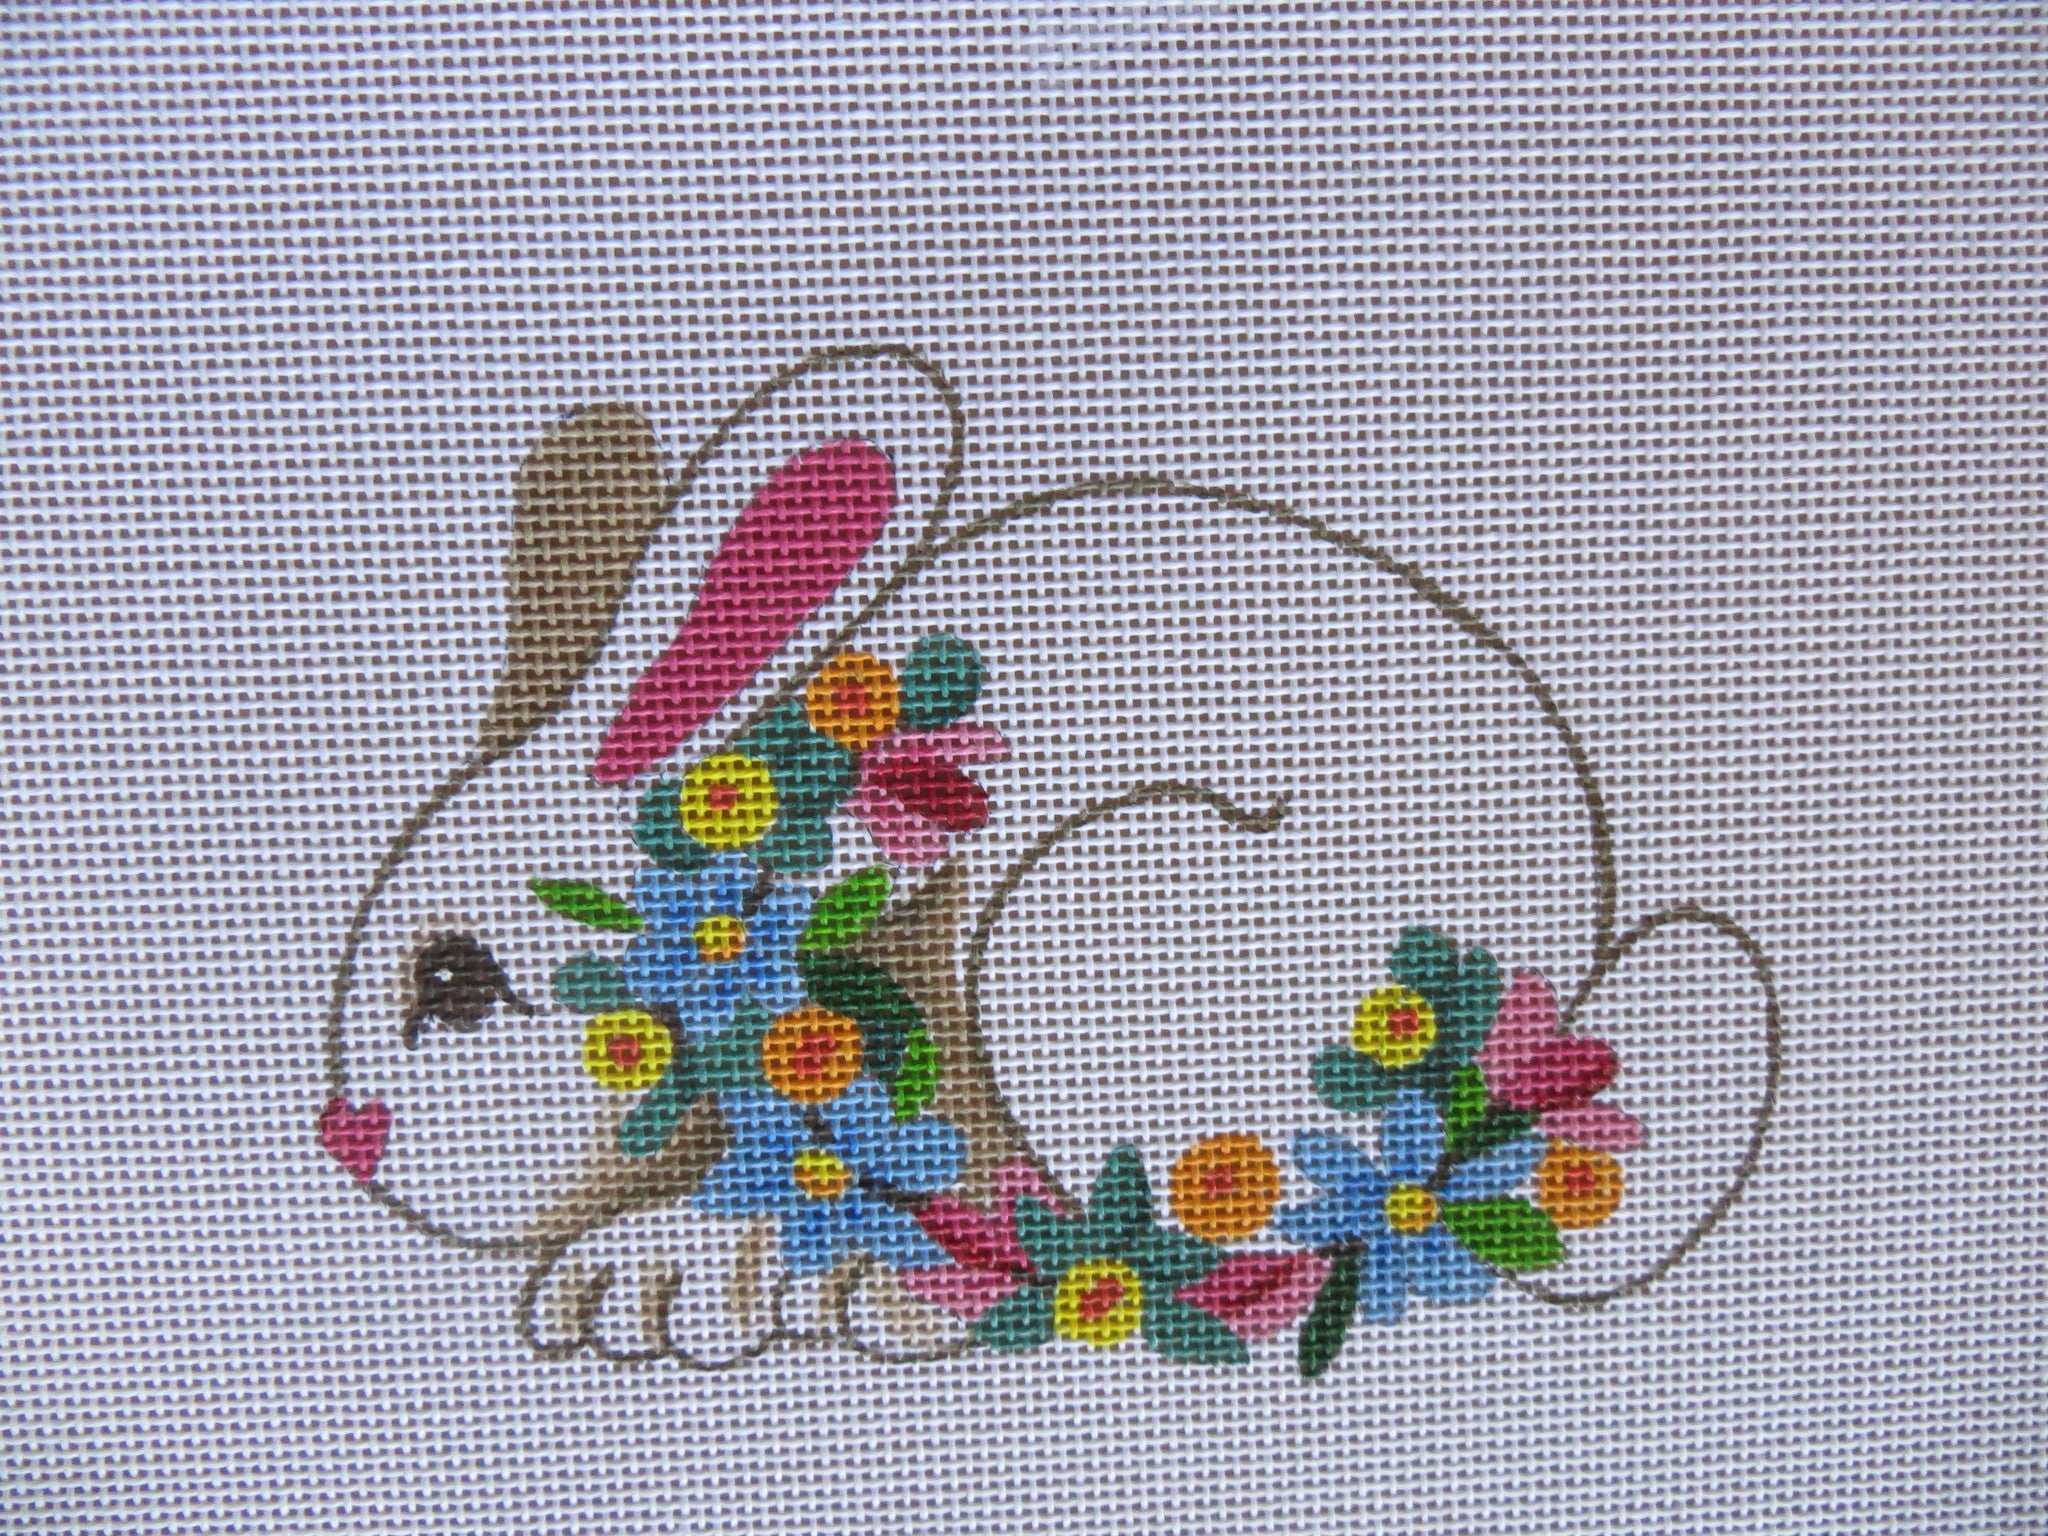 White Bunny with Flowers